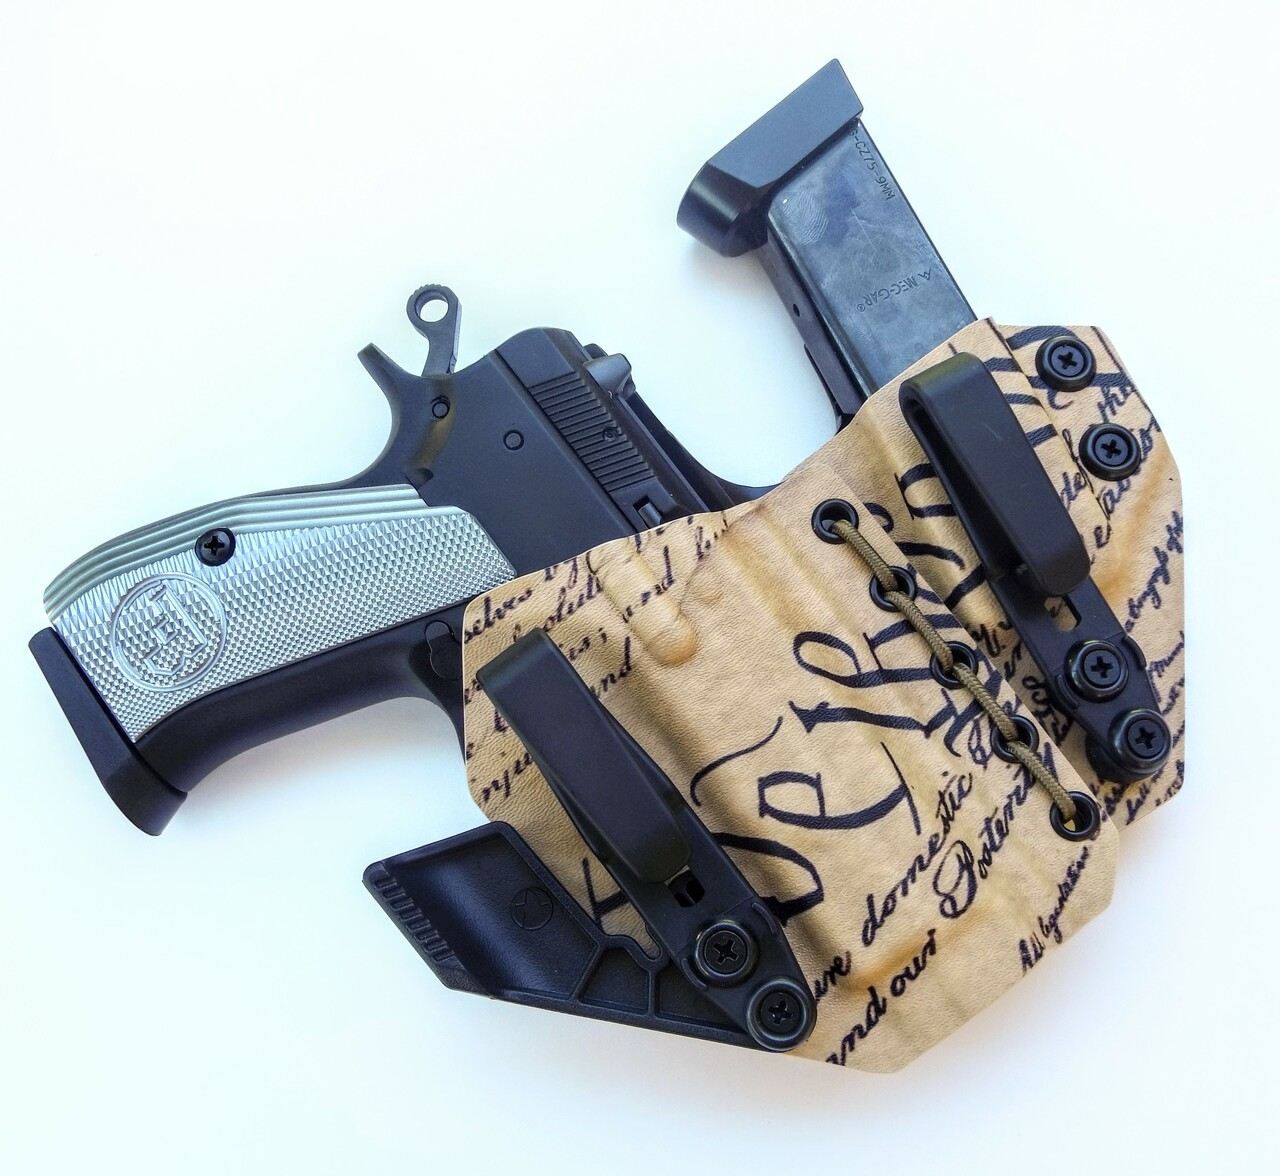 CZ 75 Compact Appendix Carry Rig Holster